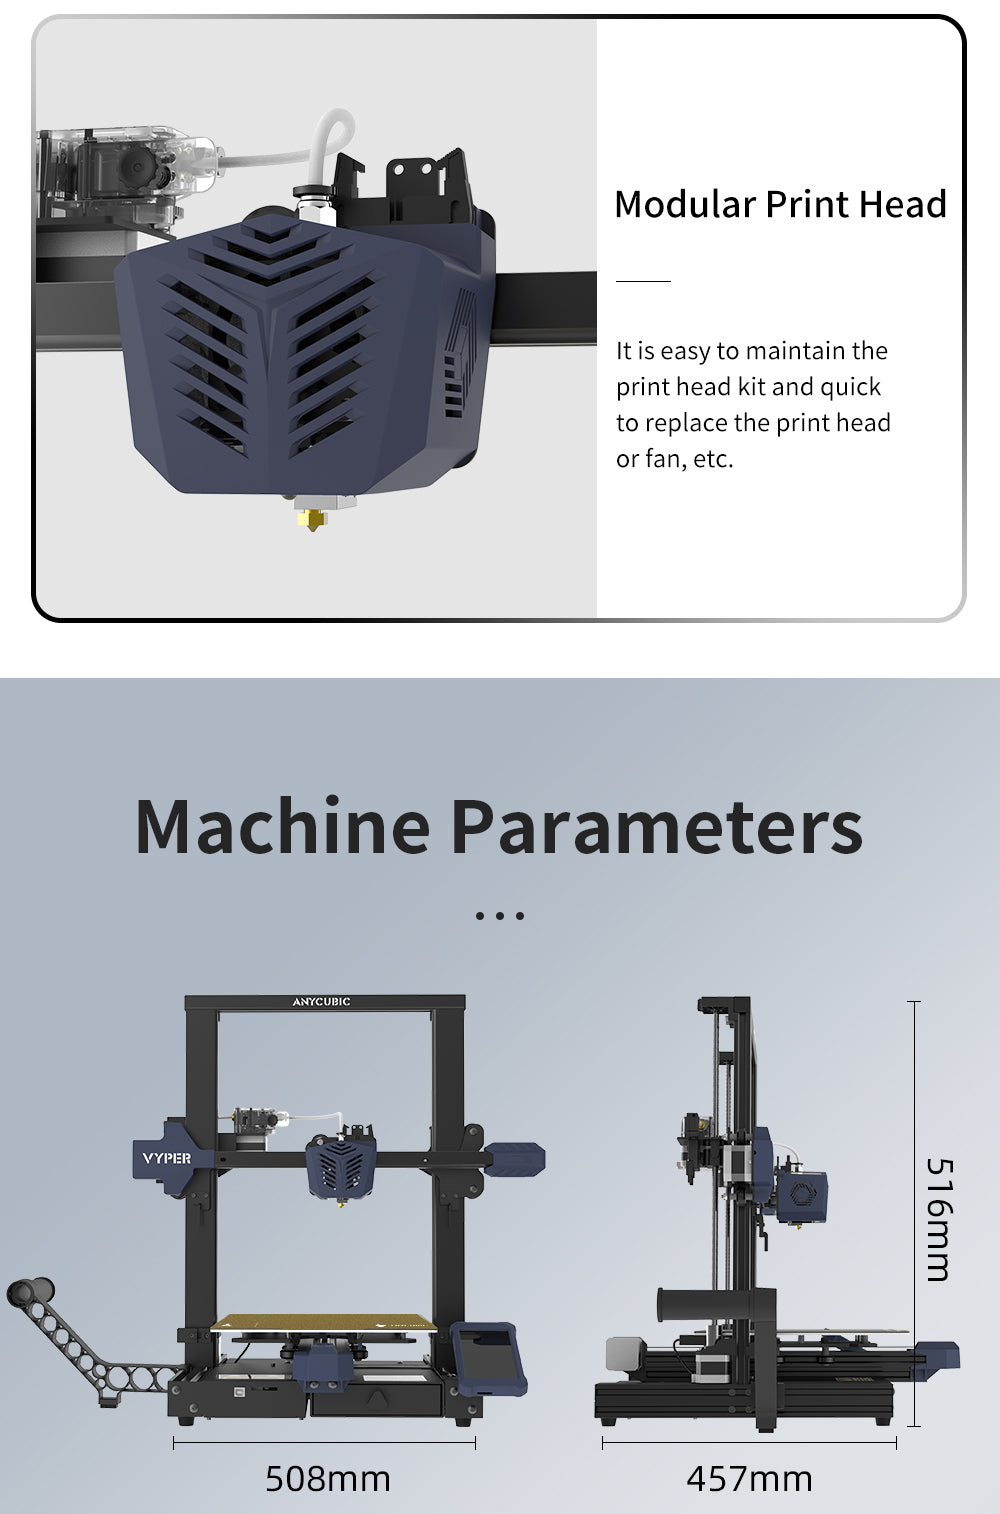 ANYCUBIC Vyper 3D Printers